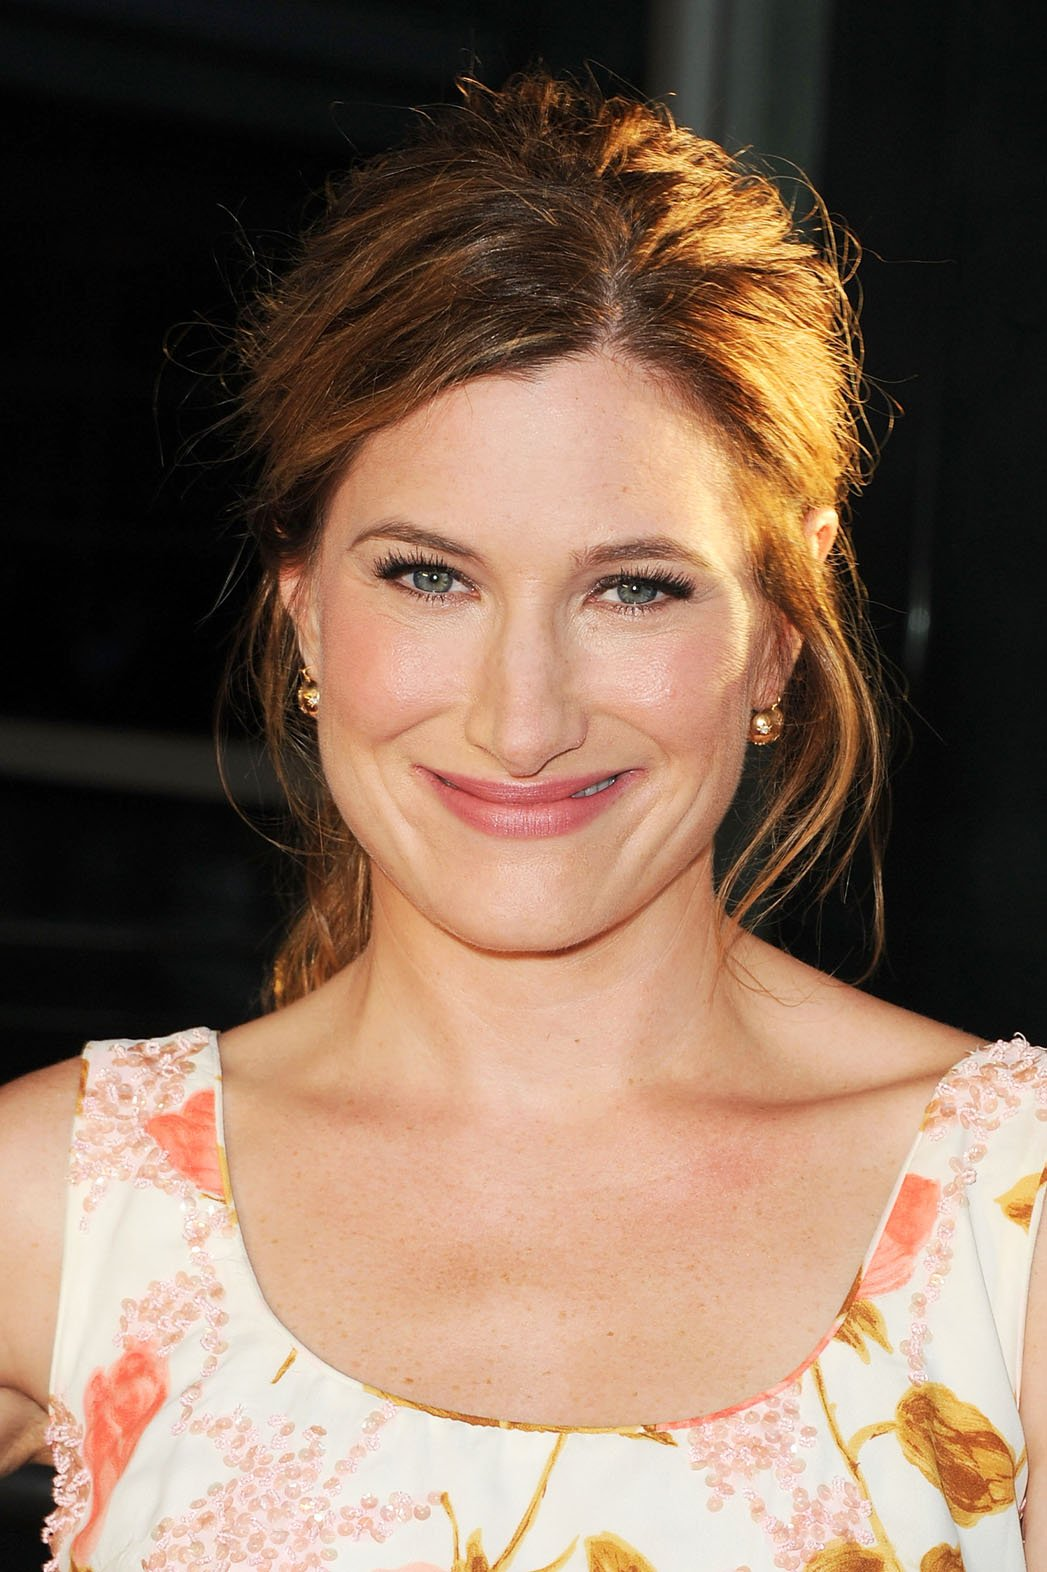 kathryn hahn step brothers hotkathryn hahn step brothers hot, kathryn hahn and ana gasteyer, kathryn hahn instagram, kathryn hahn interview, kathryn hahn parks and recreation, kathryn hahn facebook, kathryn hahn wiki, kathryn hahn, kathryn hahn imdb, kathryn hahn husband, kathryn hahn bio, kathryn hahn afternoon delight, kathryn hahn we're the millers, kathryn hahn snl, kathryn hahn movies, kathryn hahn net worth, kathryn hahn step brothers, kathryn hahn twitter